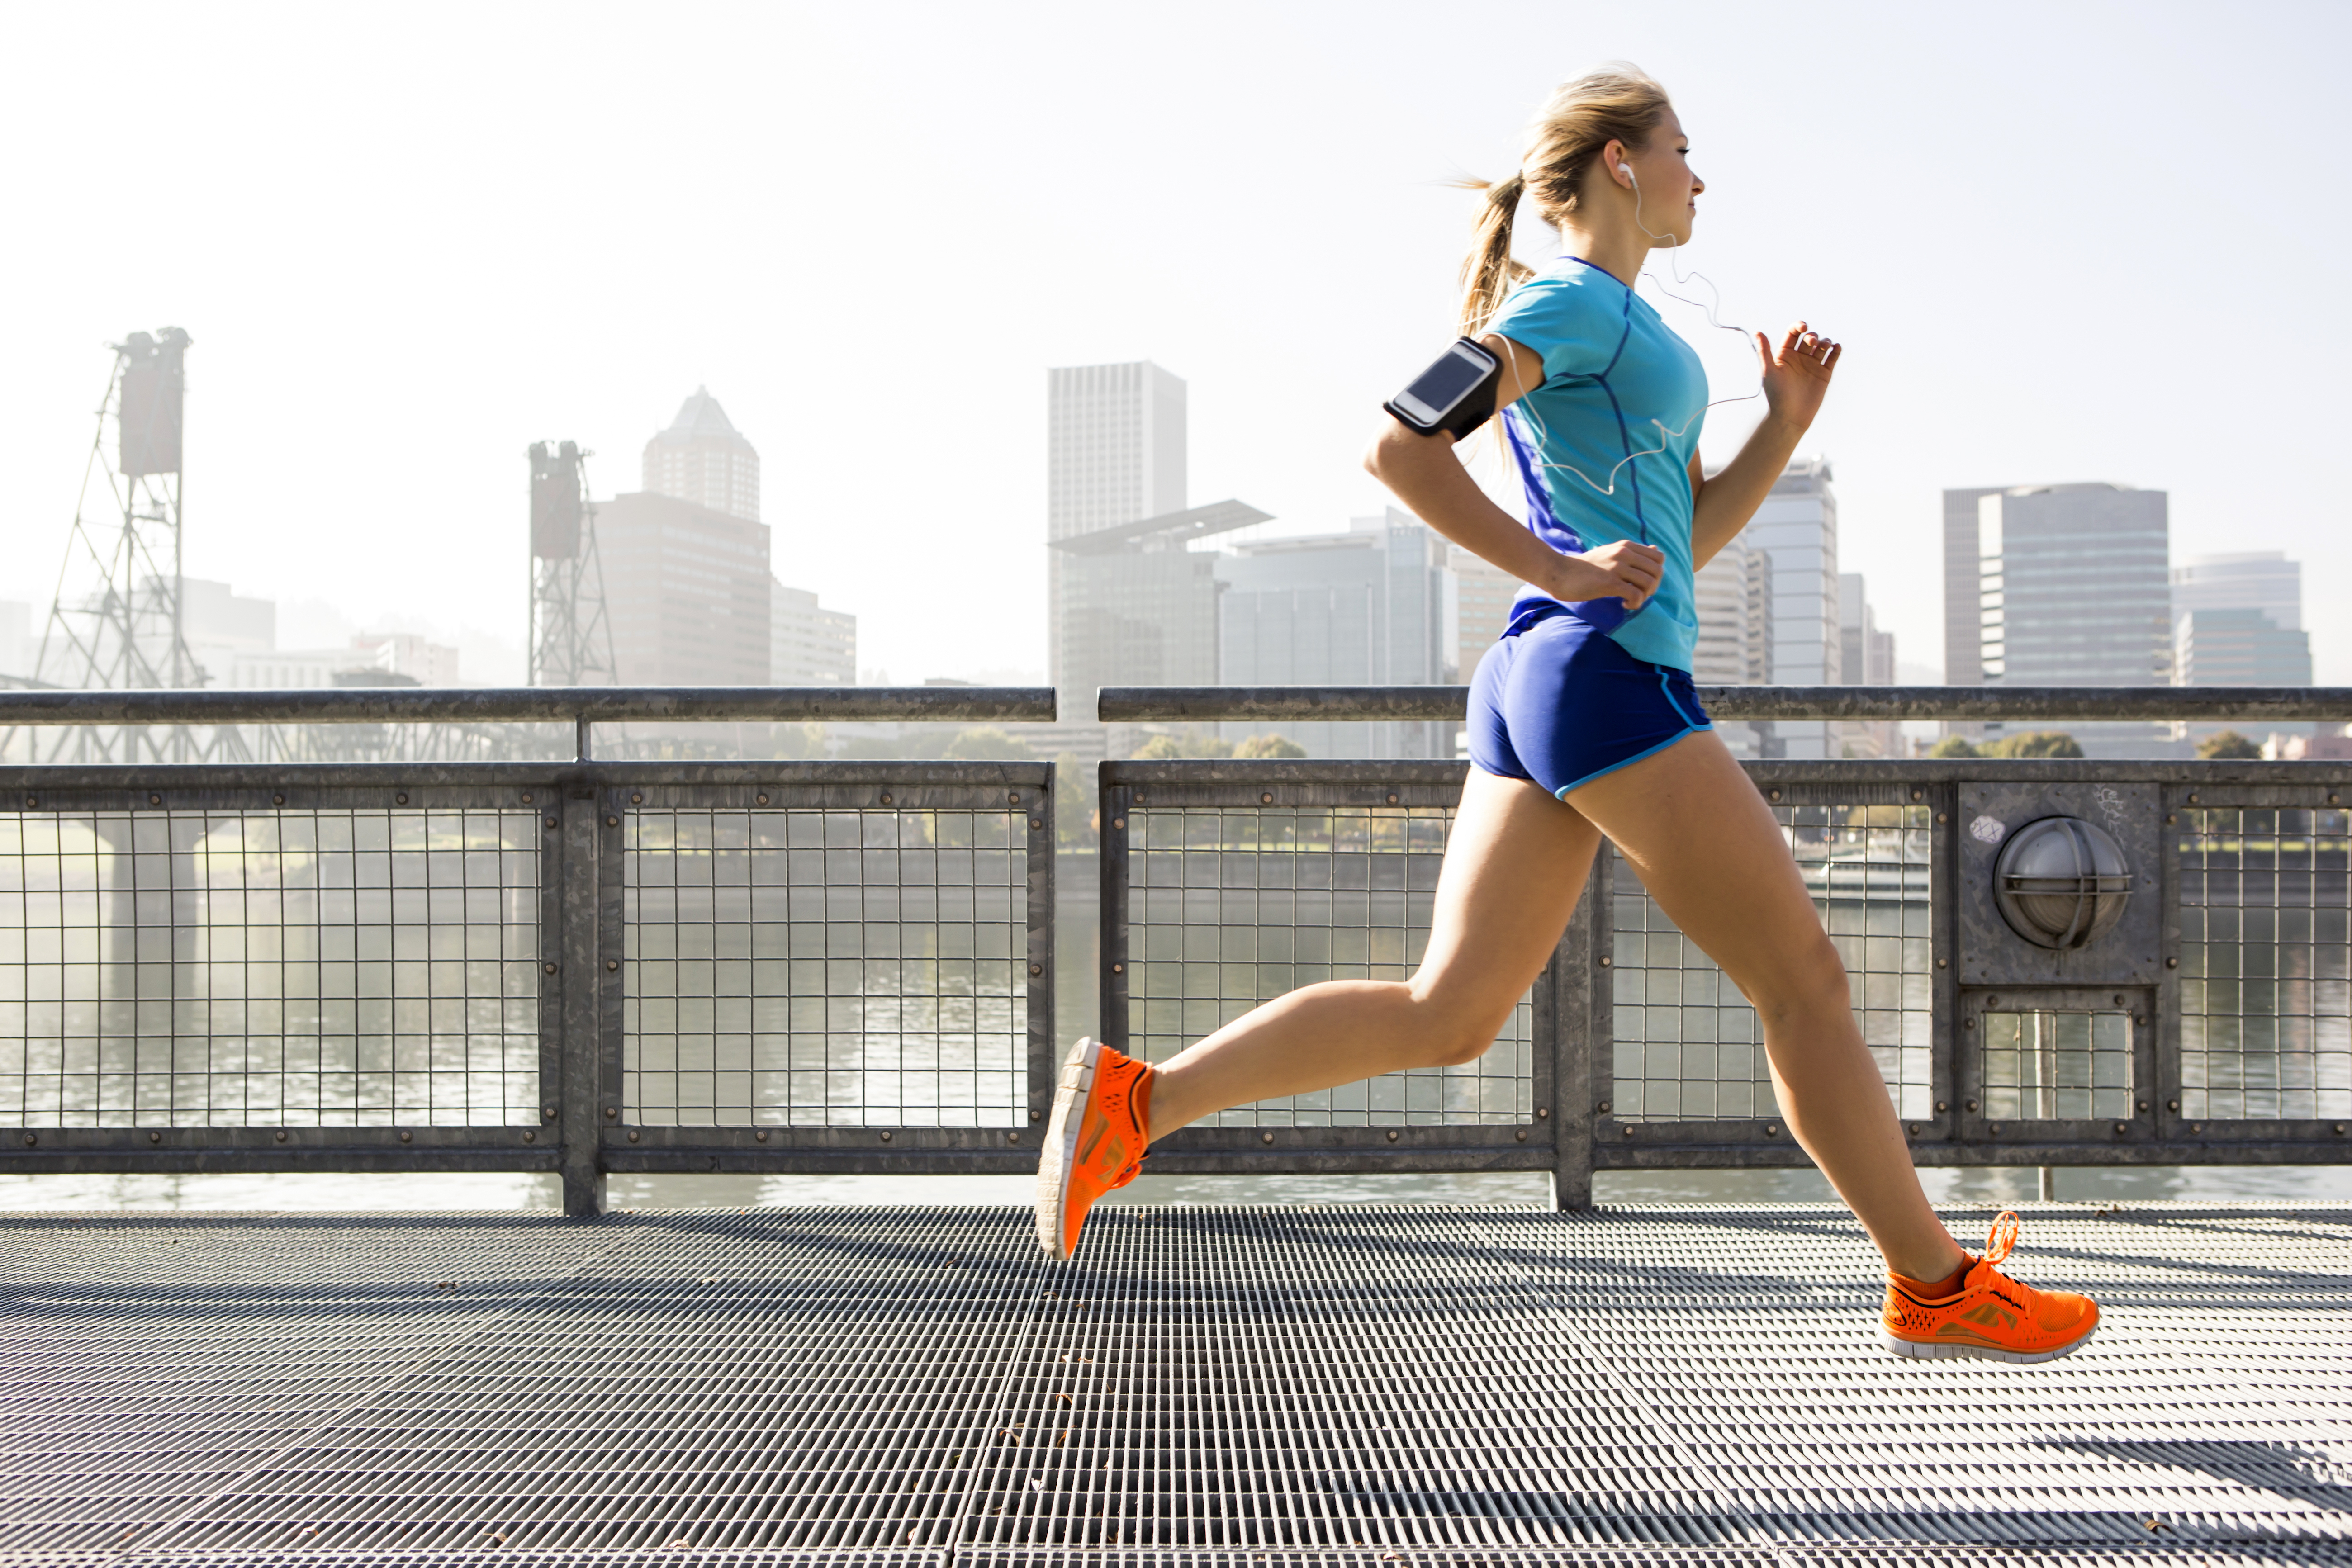 A young girl running for exercise.